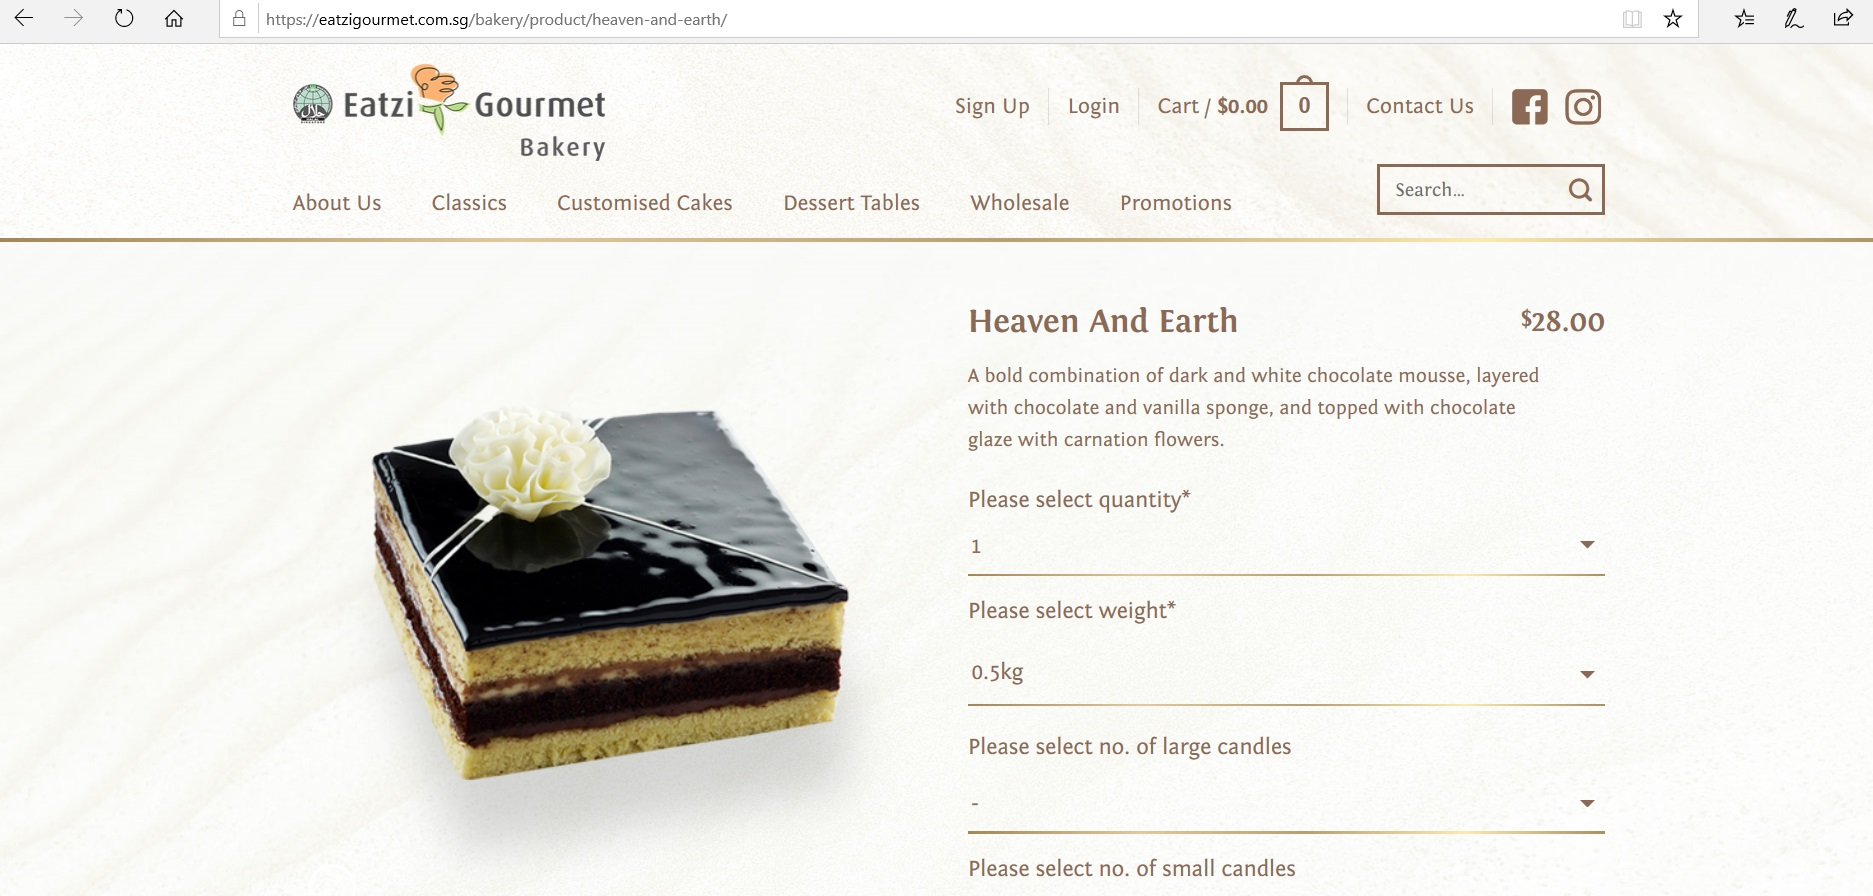 Product description of a Heaven And Earth cake.